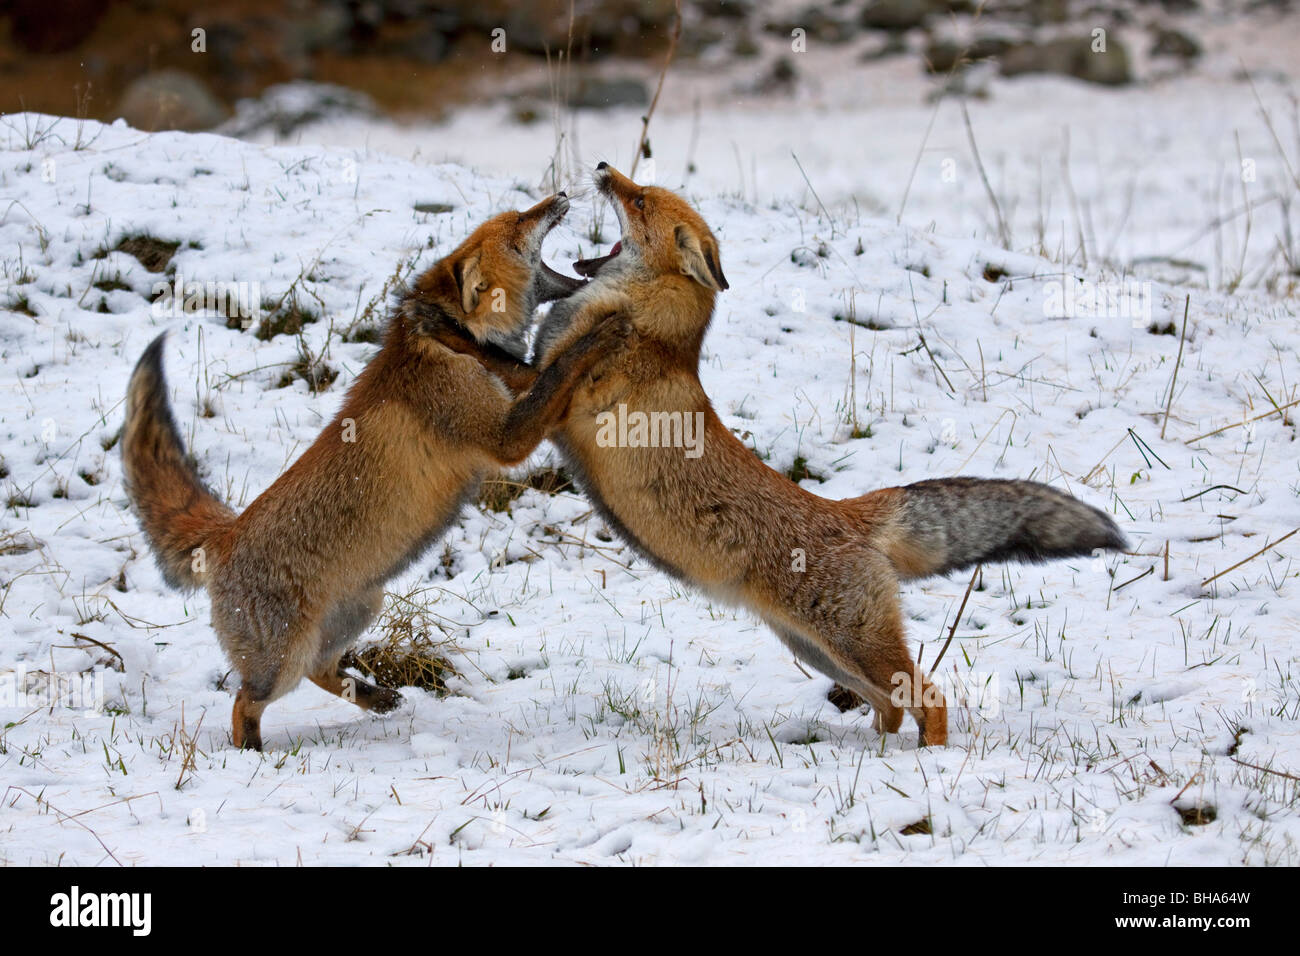 Two Red foxes (Vulpes vulpes) fighting in the snow in winter - Stock Image